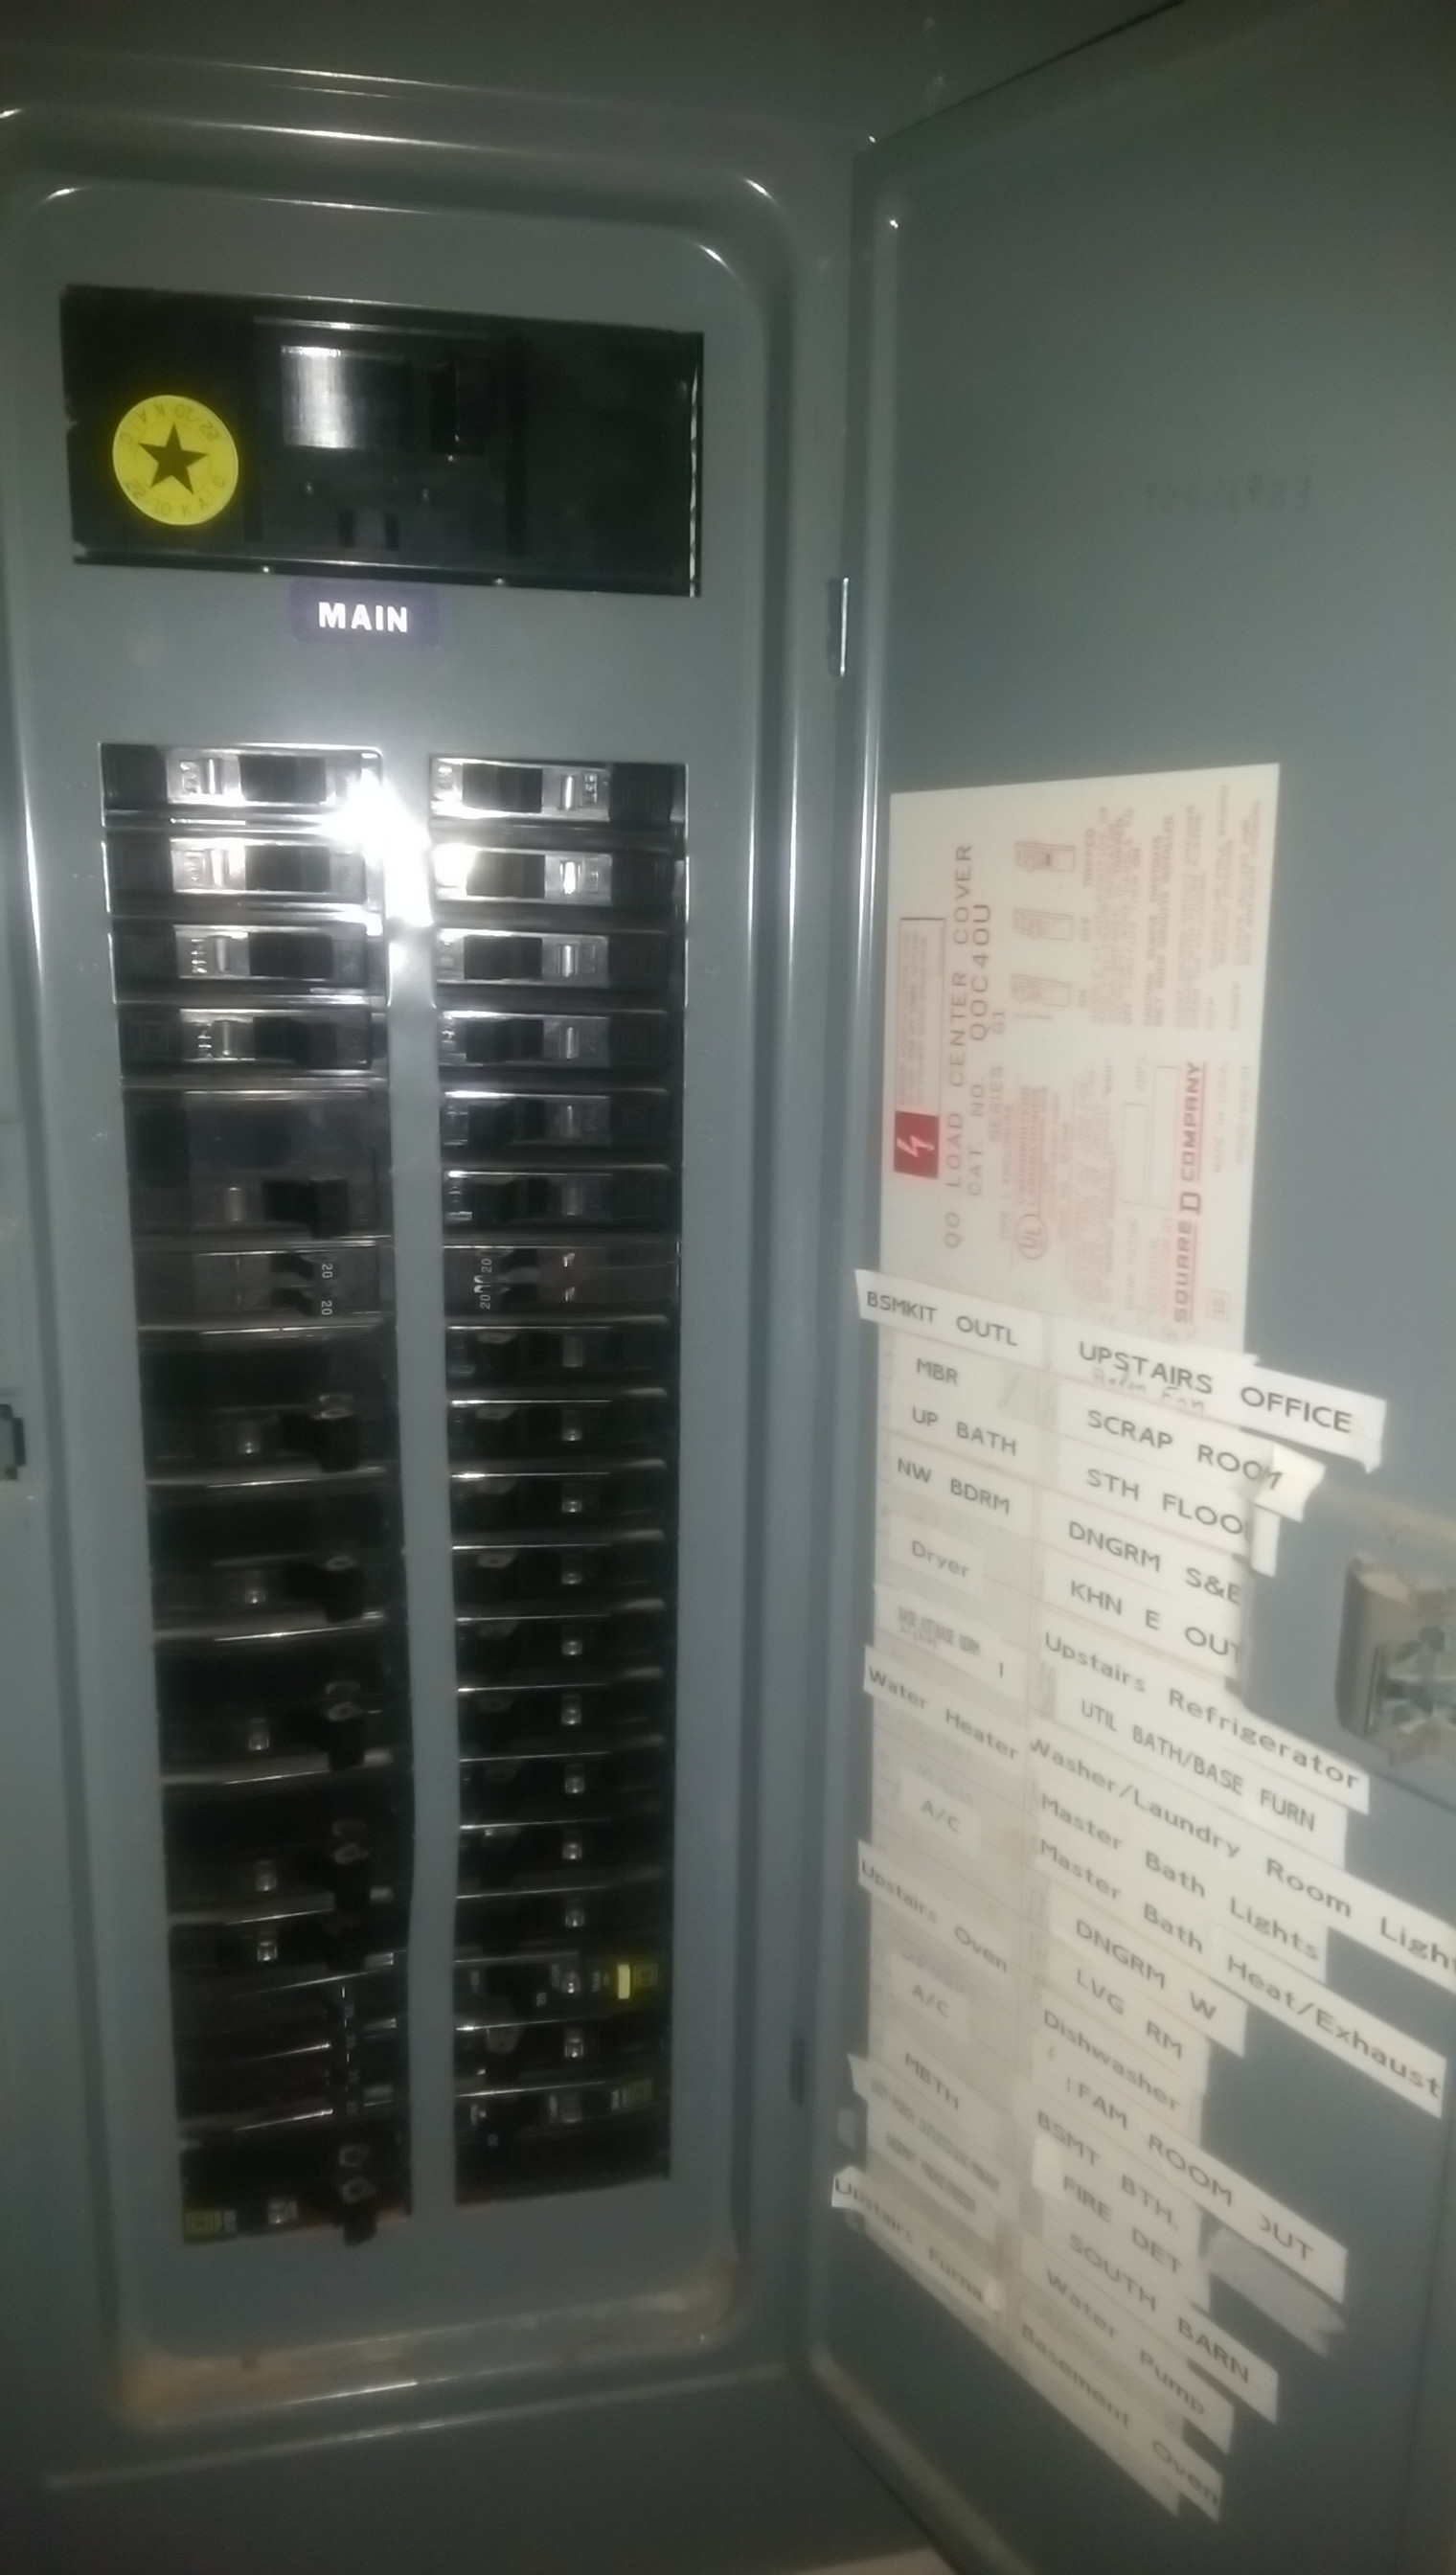 Marvelous Electrical Need Advice On Connecting 100 Amp Sub Panel To 200 Amp Wiring Cloud Loplapiotaidewilluminateatxorg